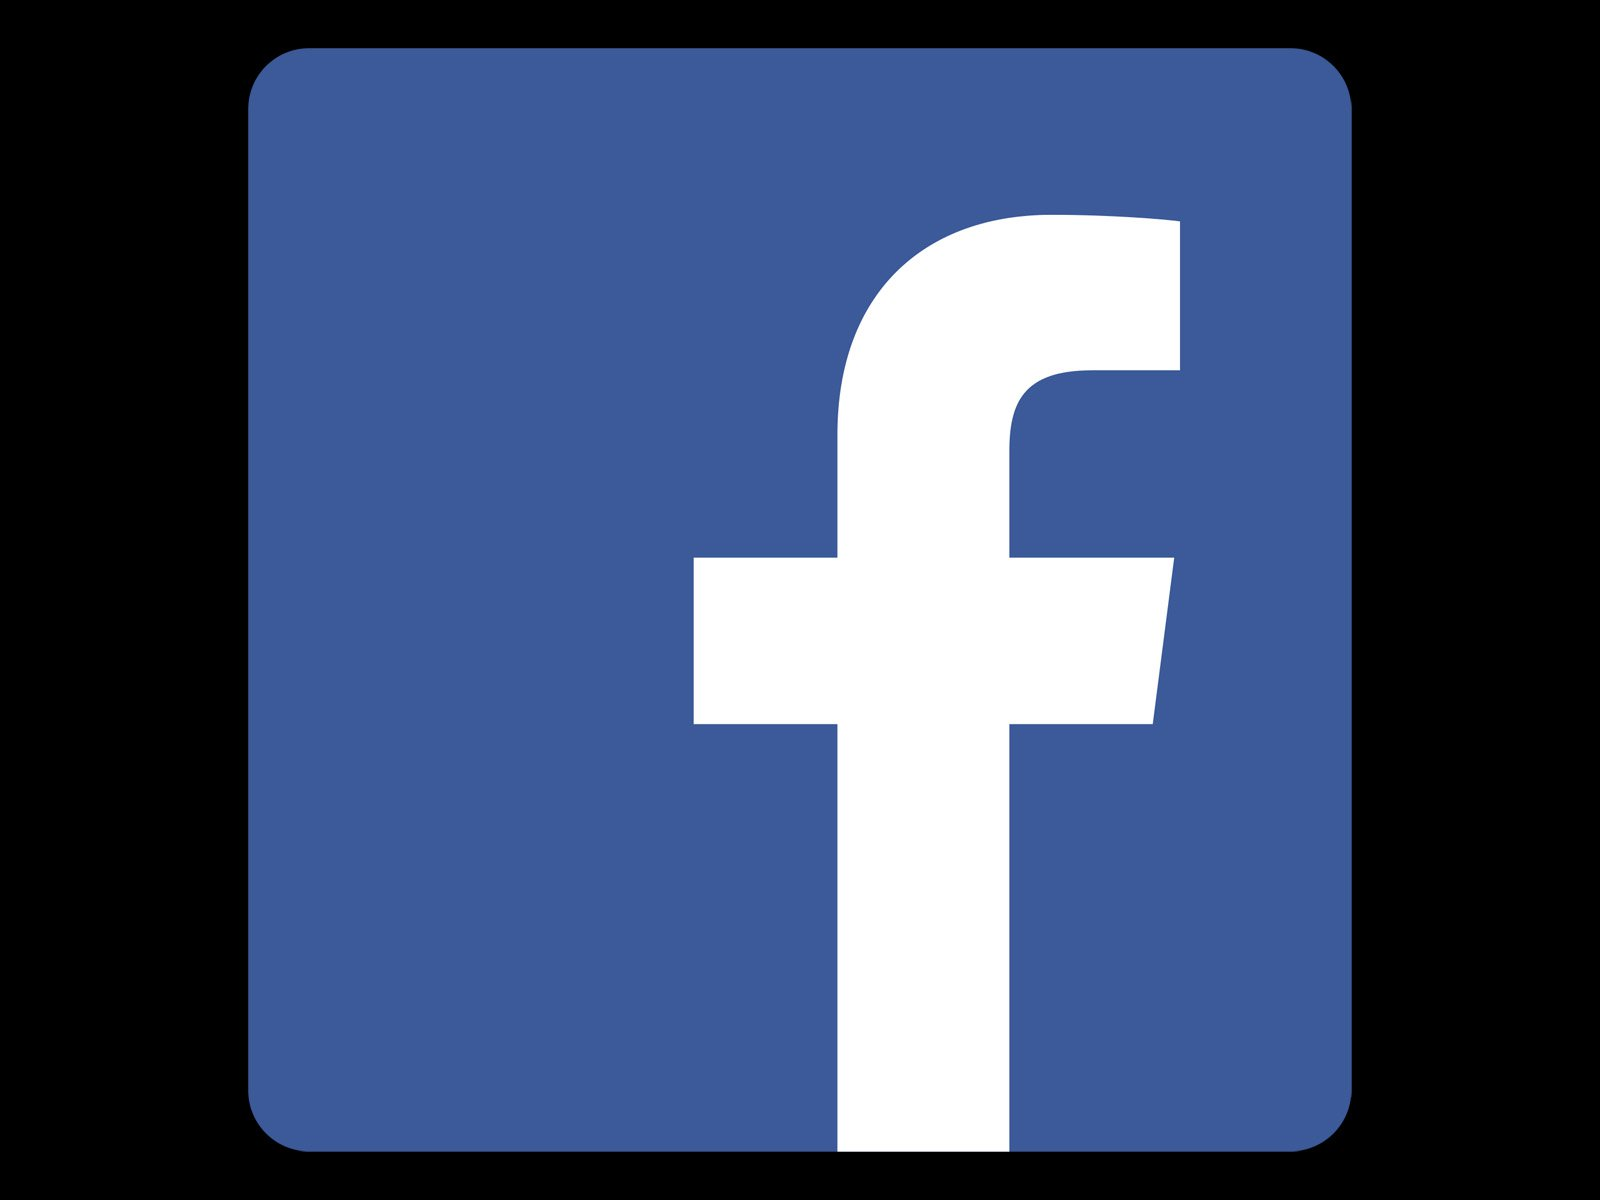 Facebook logo facebook symbol meaning history and evolution facebook icon symbol biocorpaavc Images